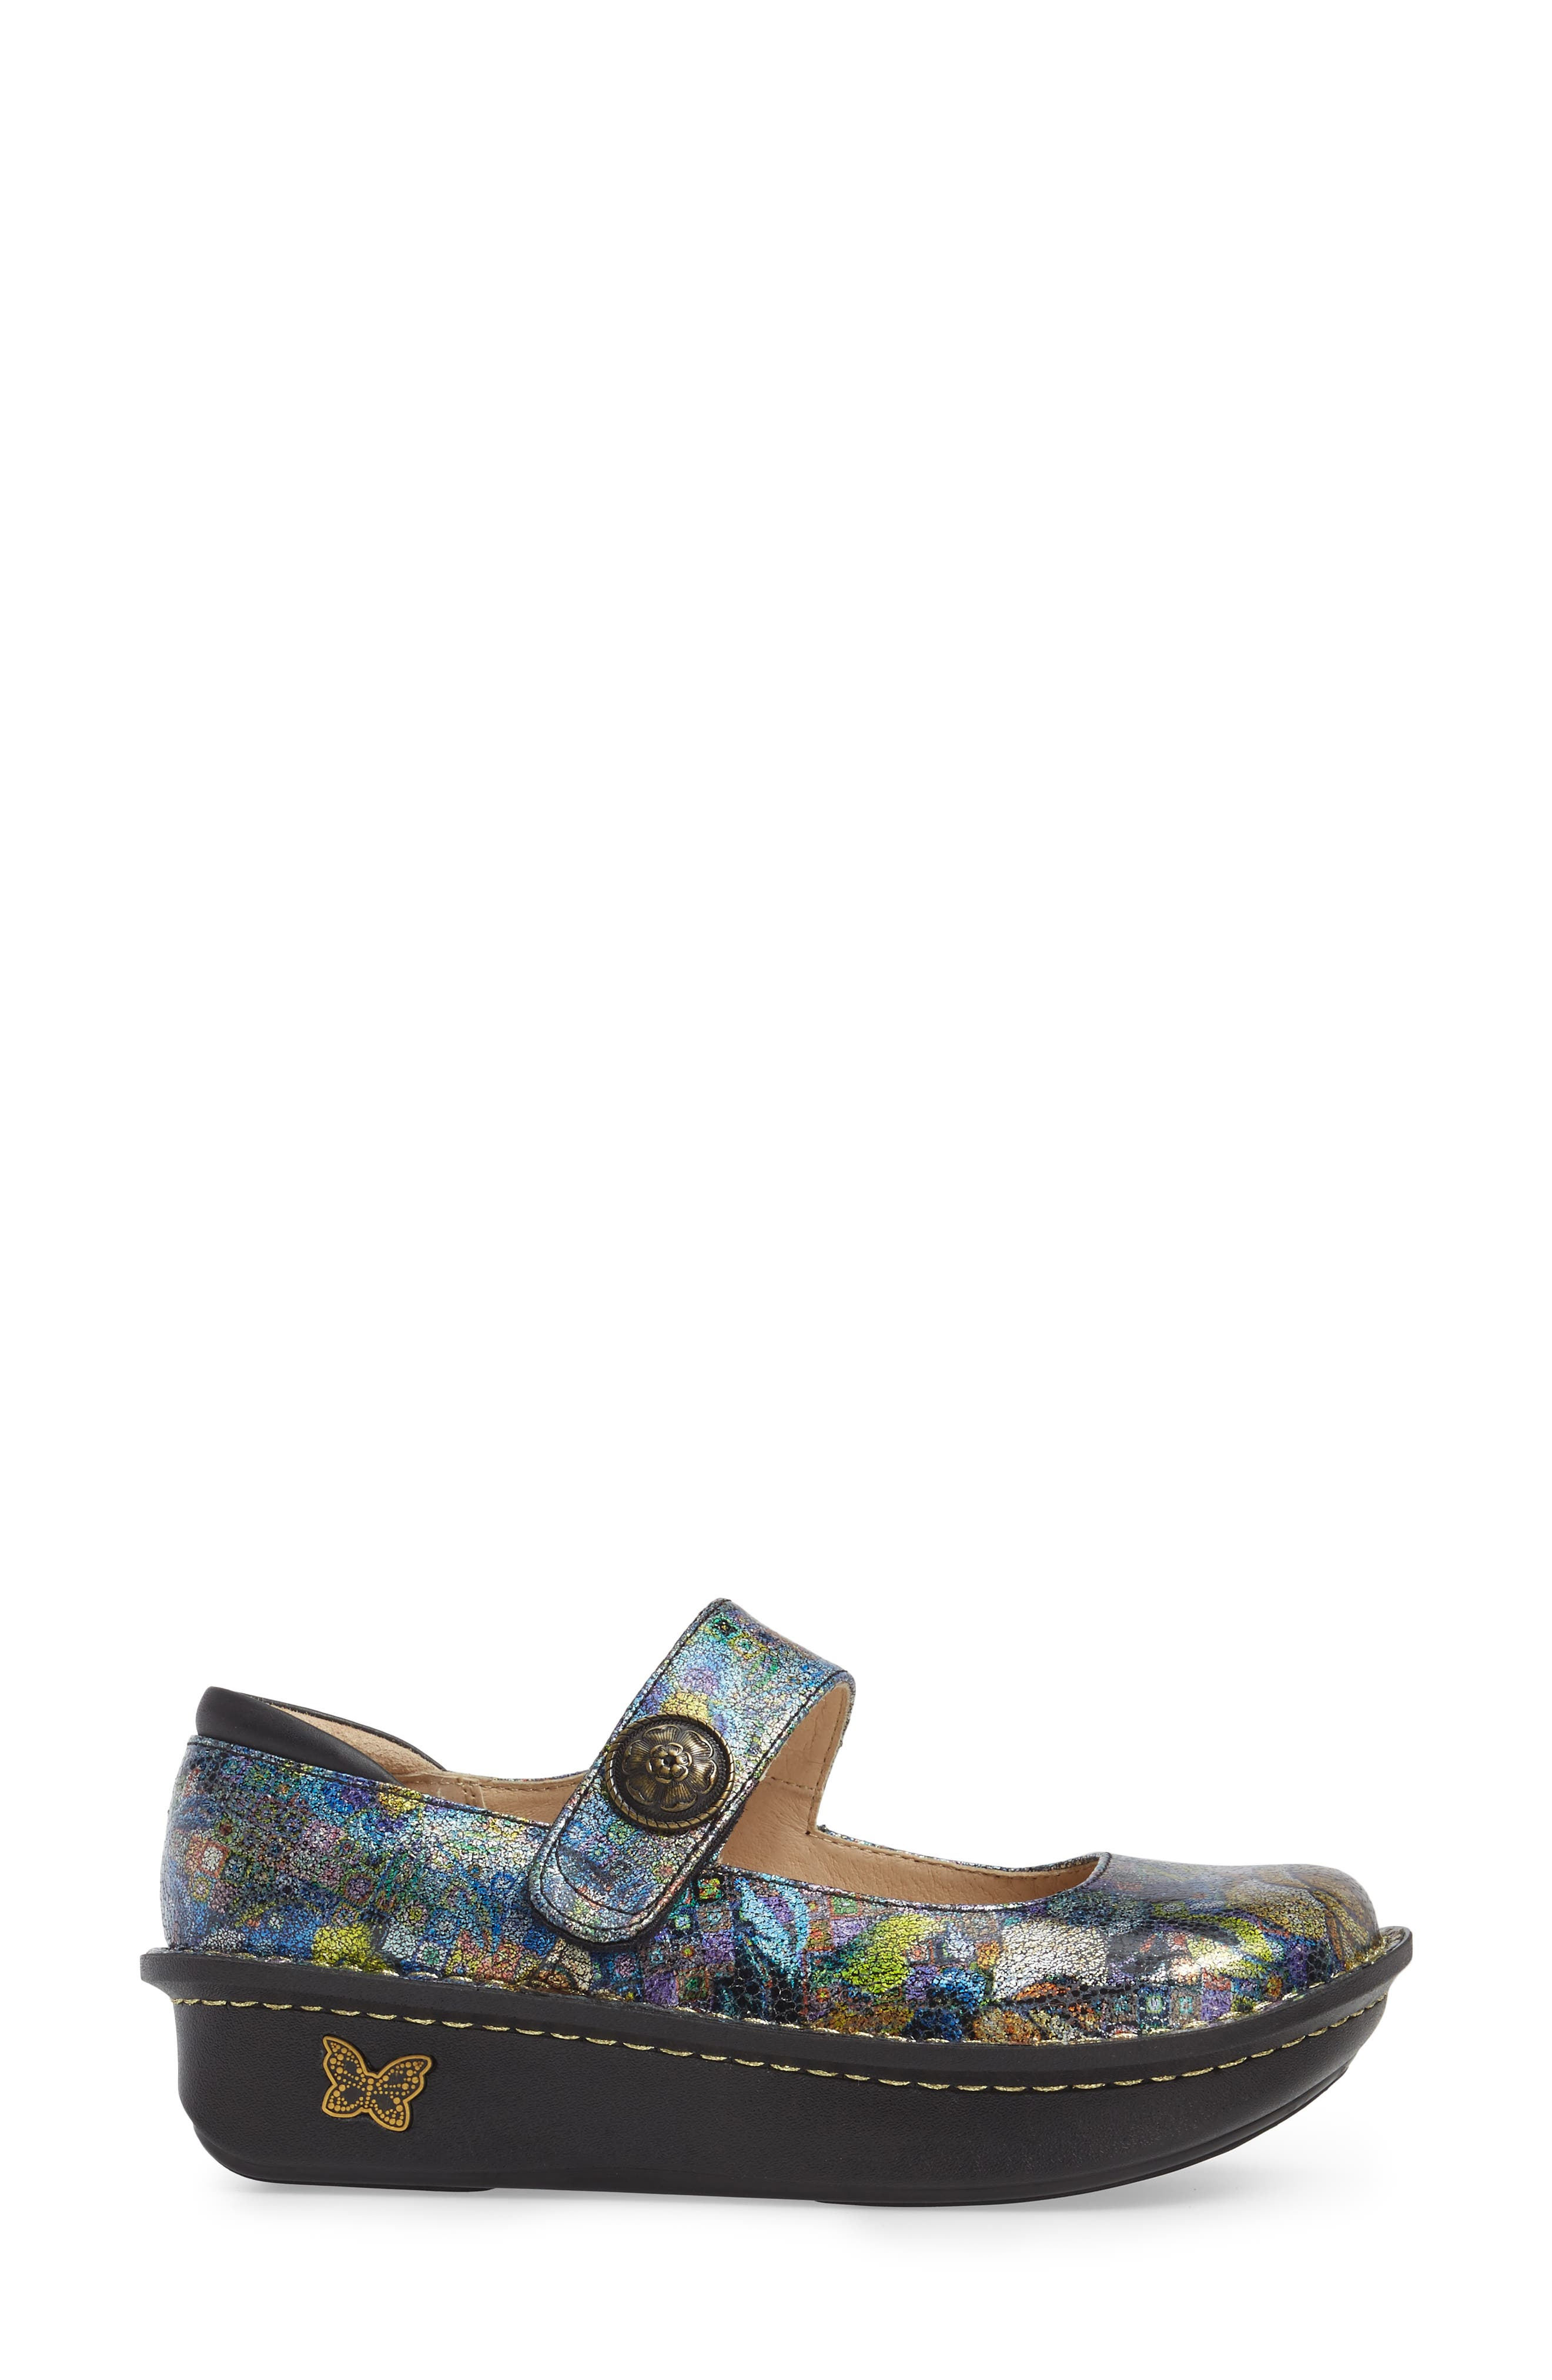 'Paloma' Slip-On,                             Alternate thumbnail 3, color,                             Gypsy Rose Leather